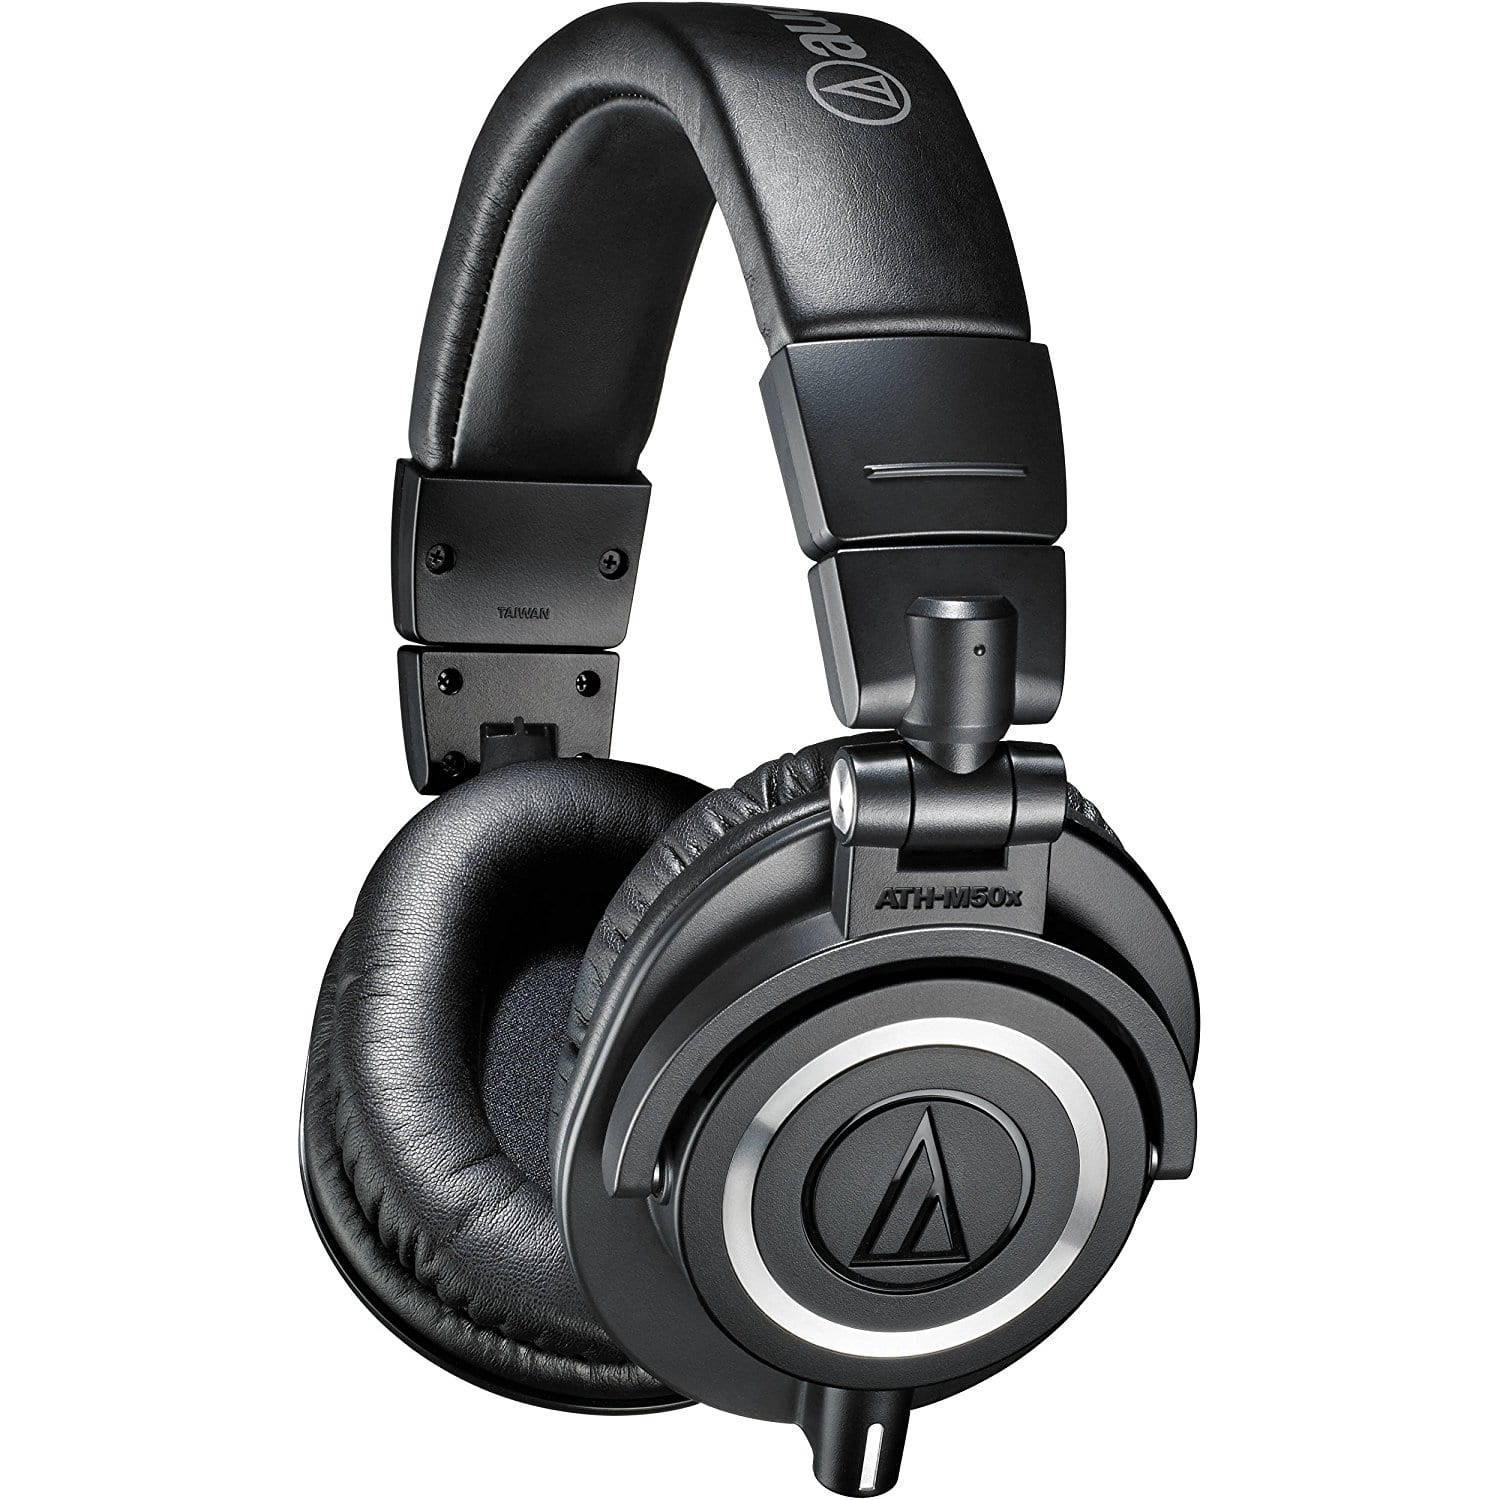 Audio-Technica ATH-M50x Professional Monitor Headphones, Black [ATH-M50x Black] - $119